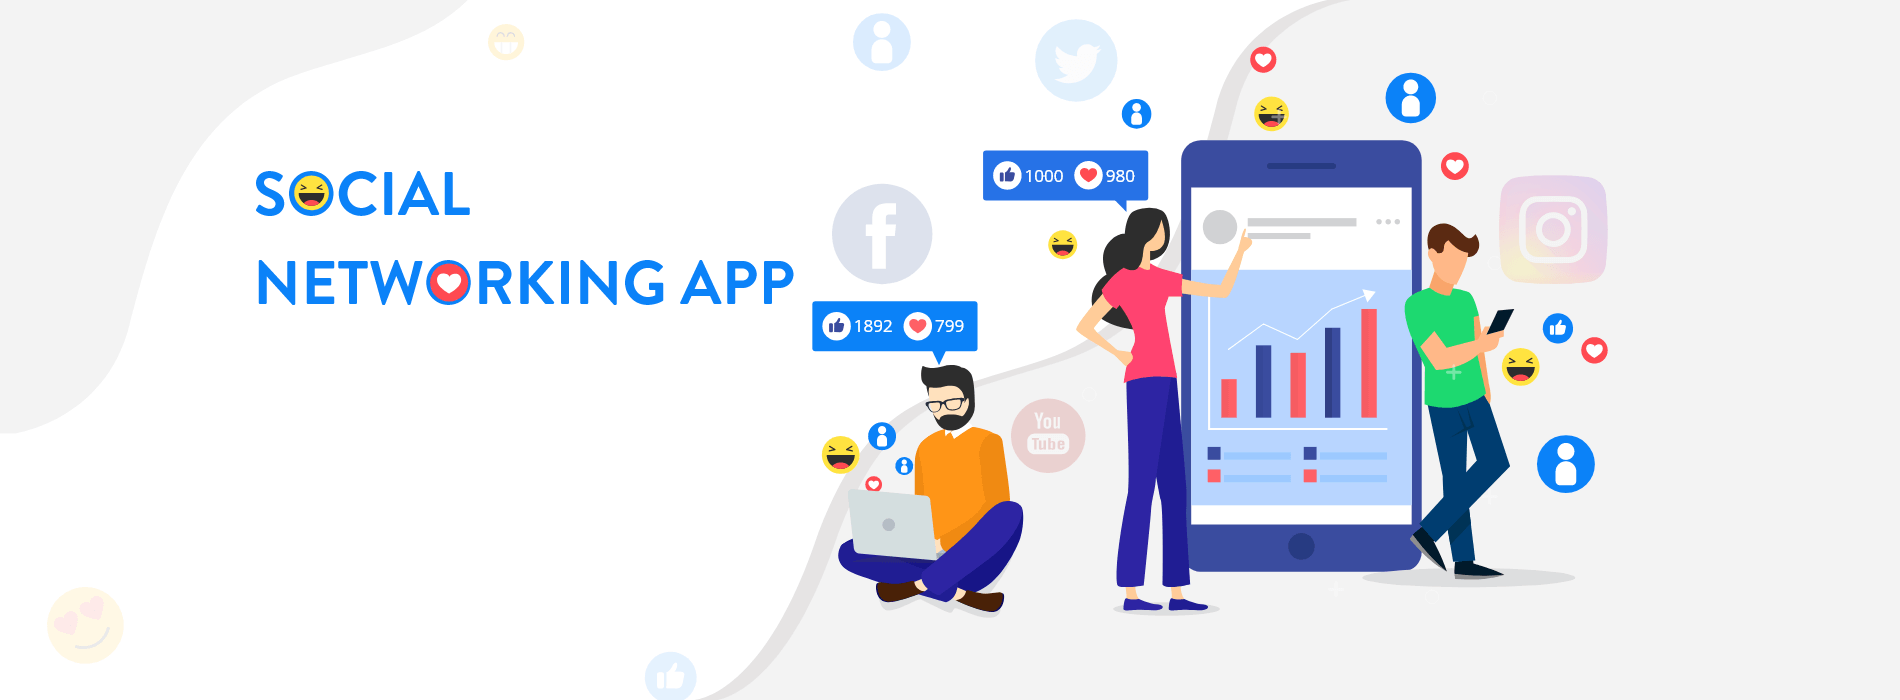 How to Create a Riveting Social Media App?